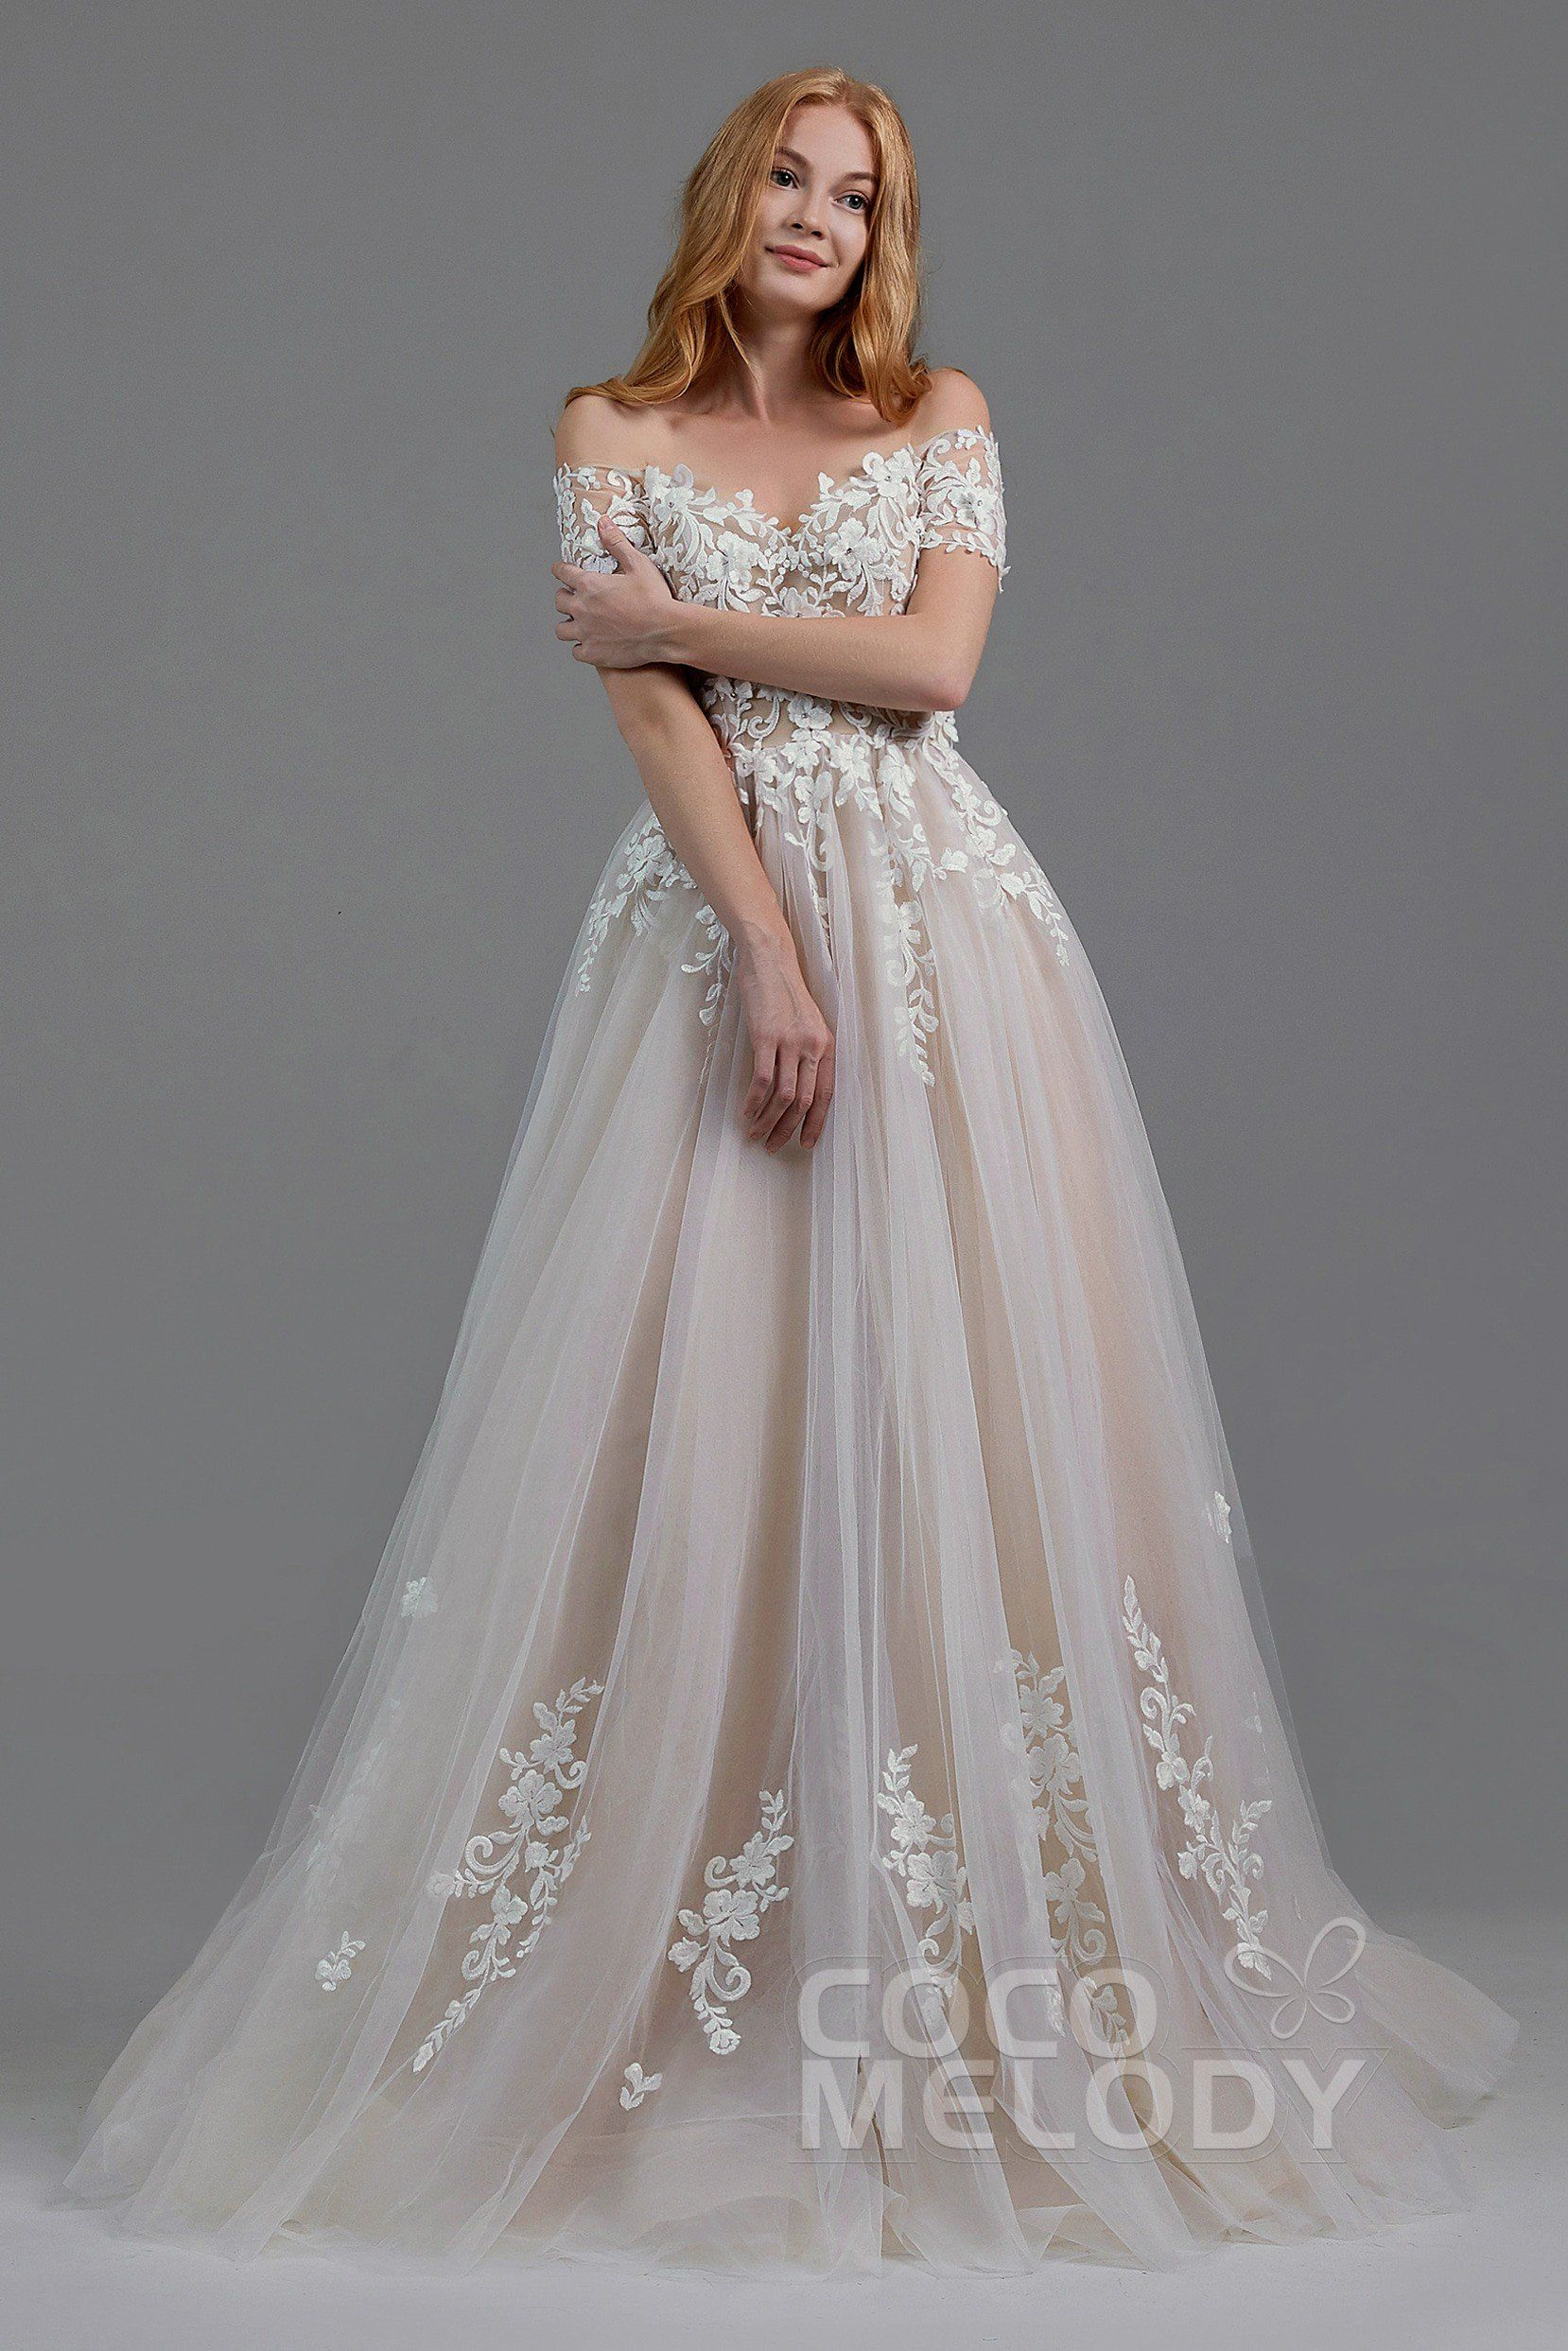 cb828d621 A-Line Sweep-Brush Train Tulle Wedding Dress LD5830 in 2019